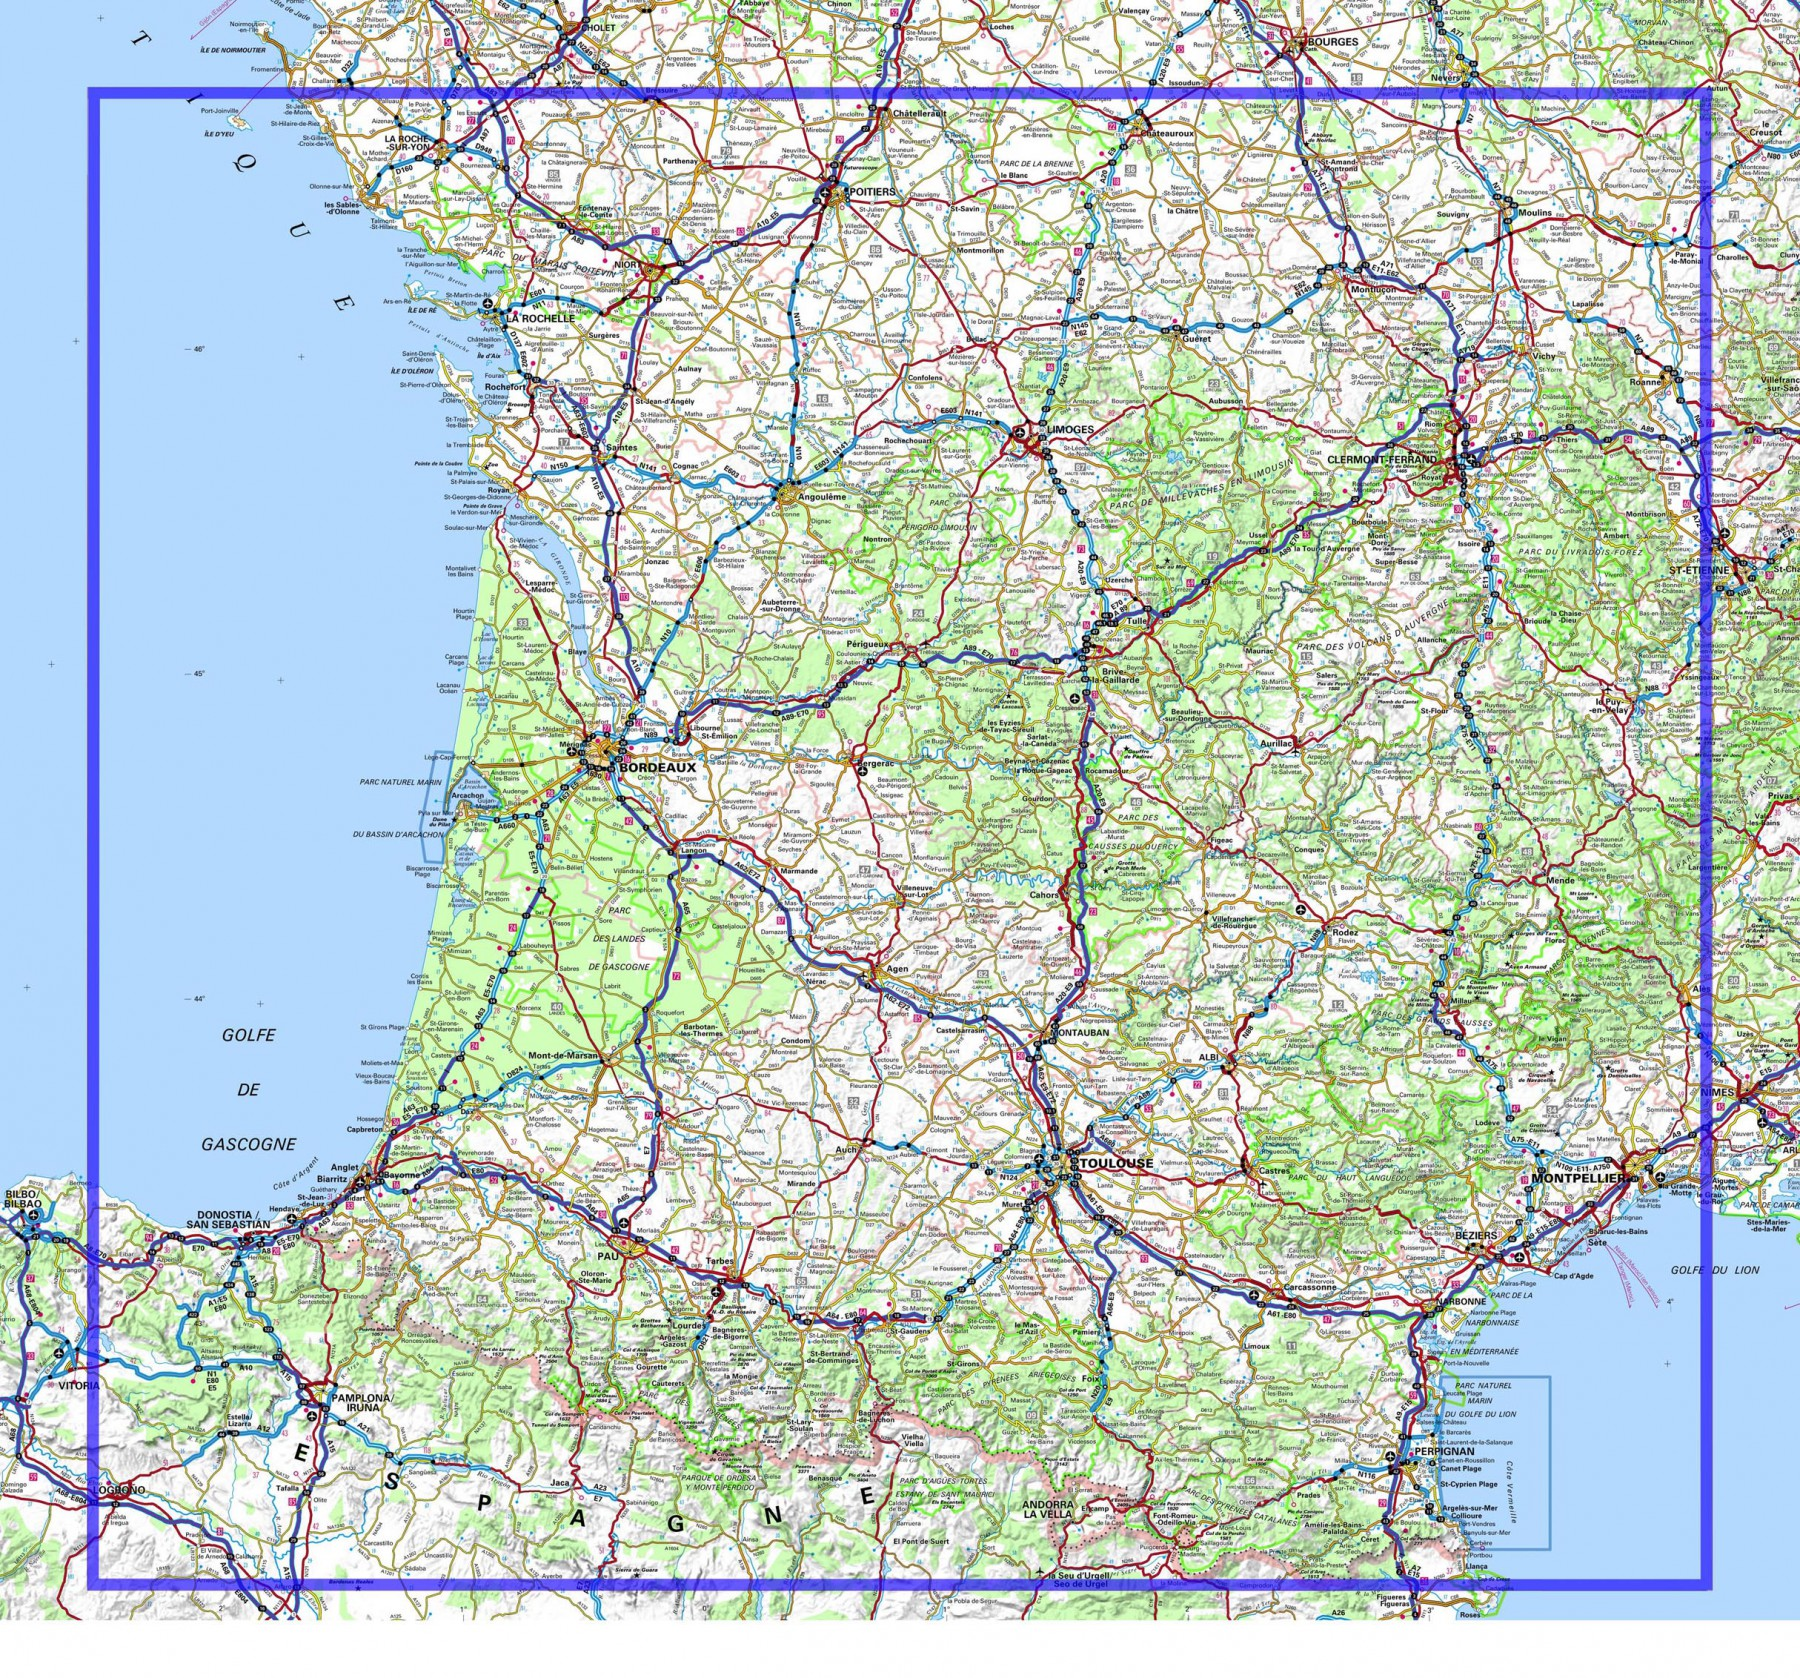 carte routiere sud ouest france